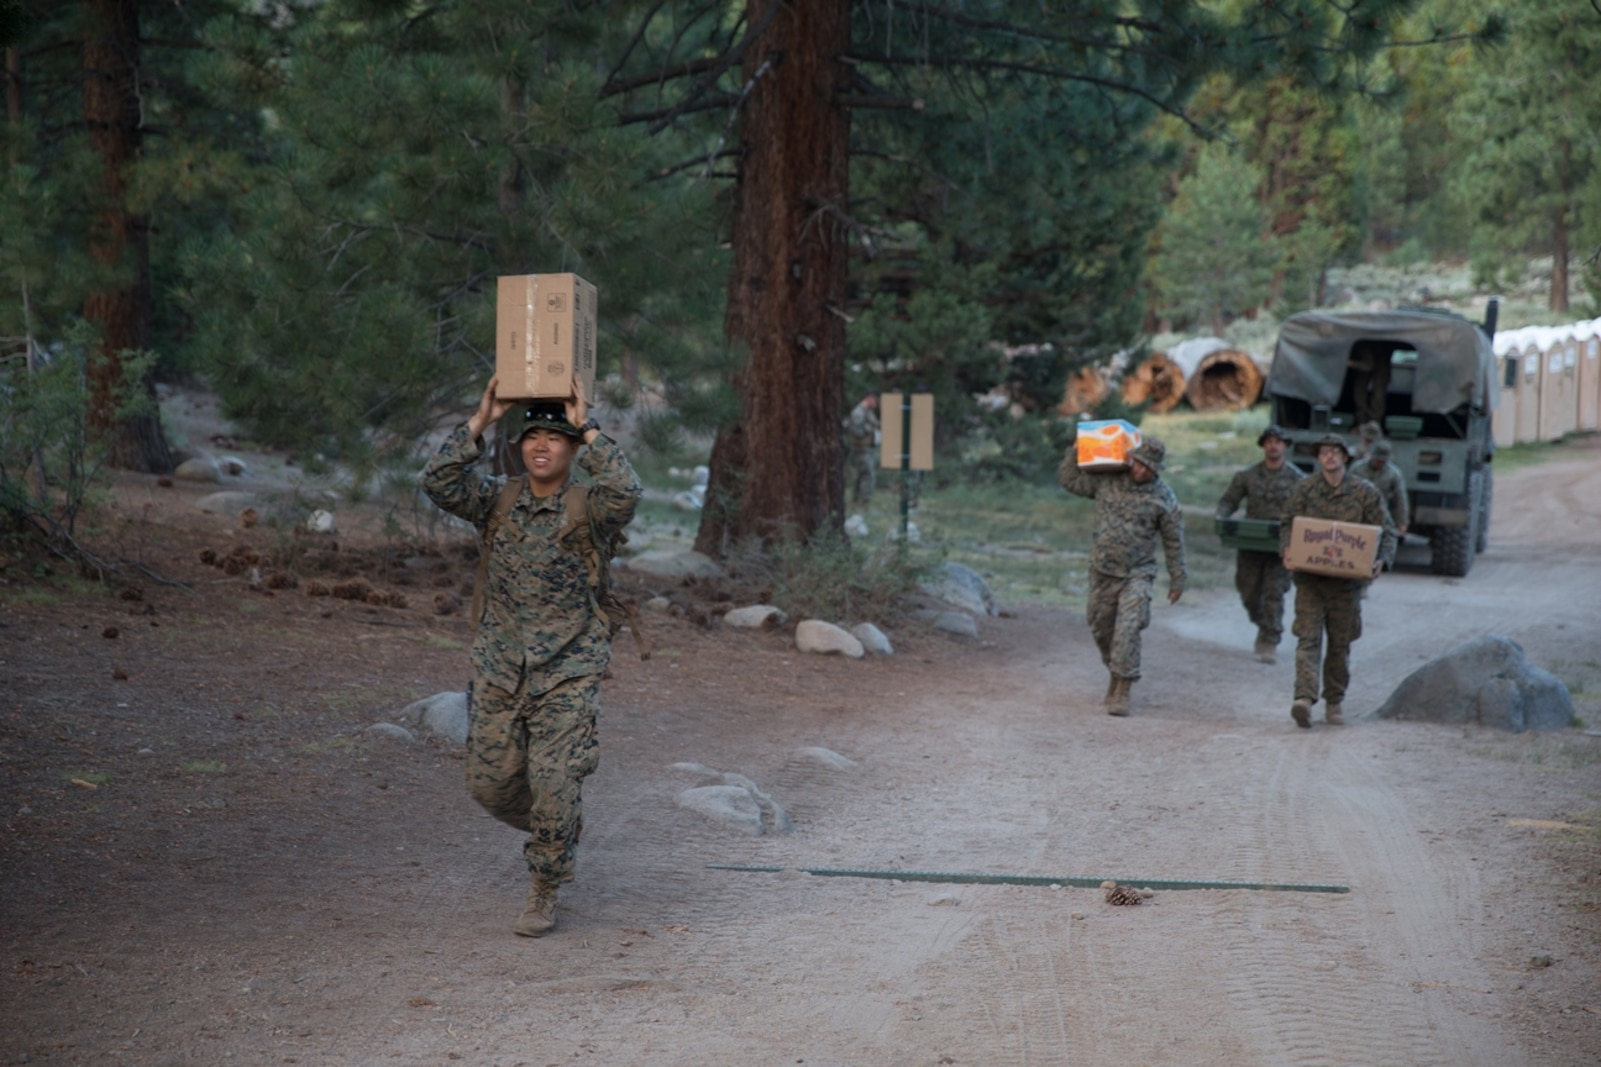 BRIDGEPORT, Calif., U.S. Marines with 2nd Battalion, 8th Marine Regiment, 2nd Marine Division carry boxes of field mess to the field mess hall during Mountain Training Exercise 4-17 at the Marine Corps Mountain Warfare Training Center Aug. 2, 2017. (U.S. Marine Corps photo by Lance Cpl. Timothy Shoemaker)